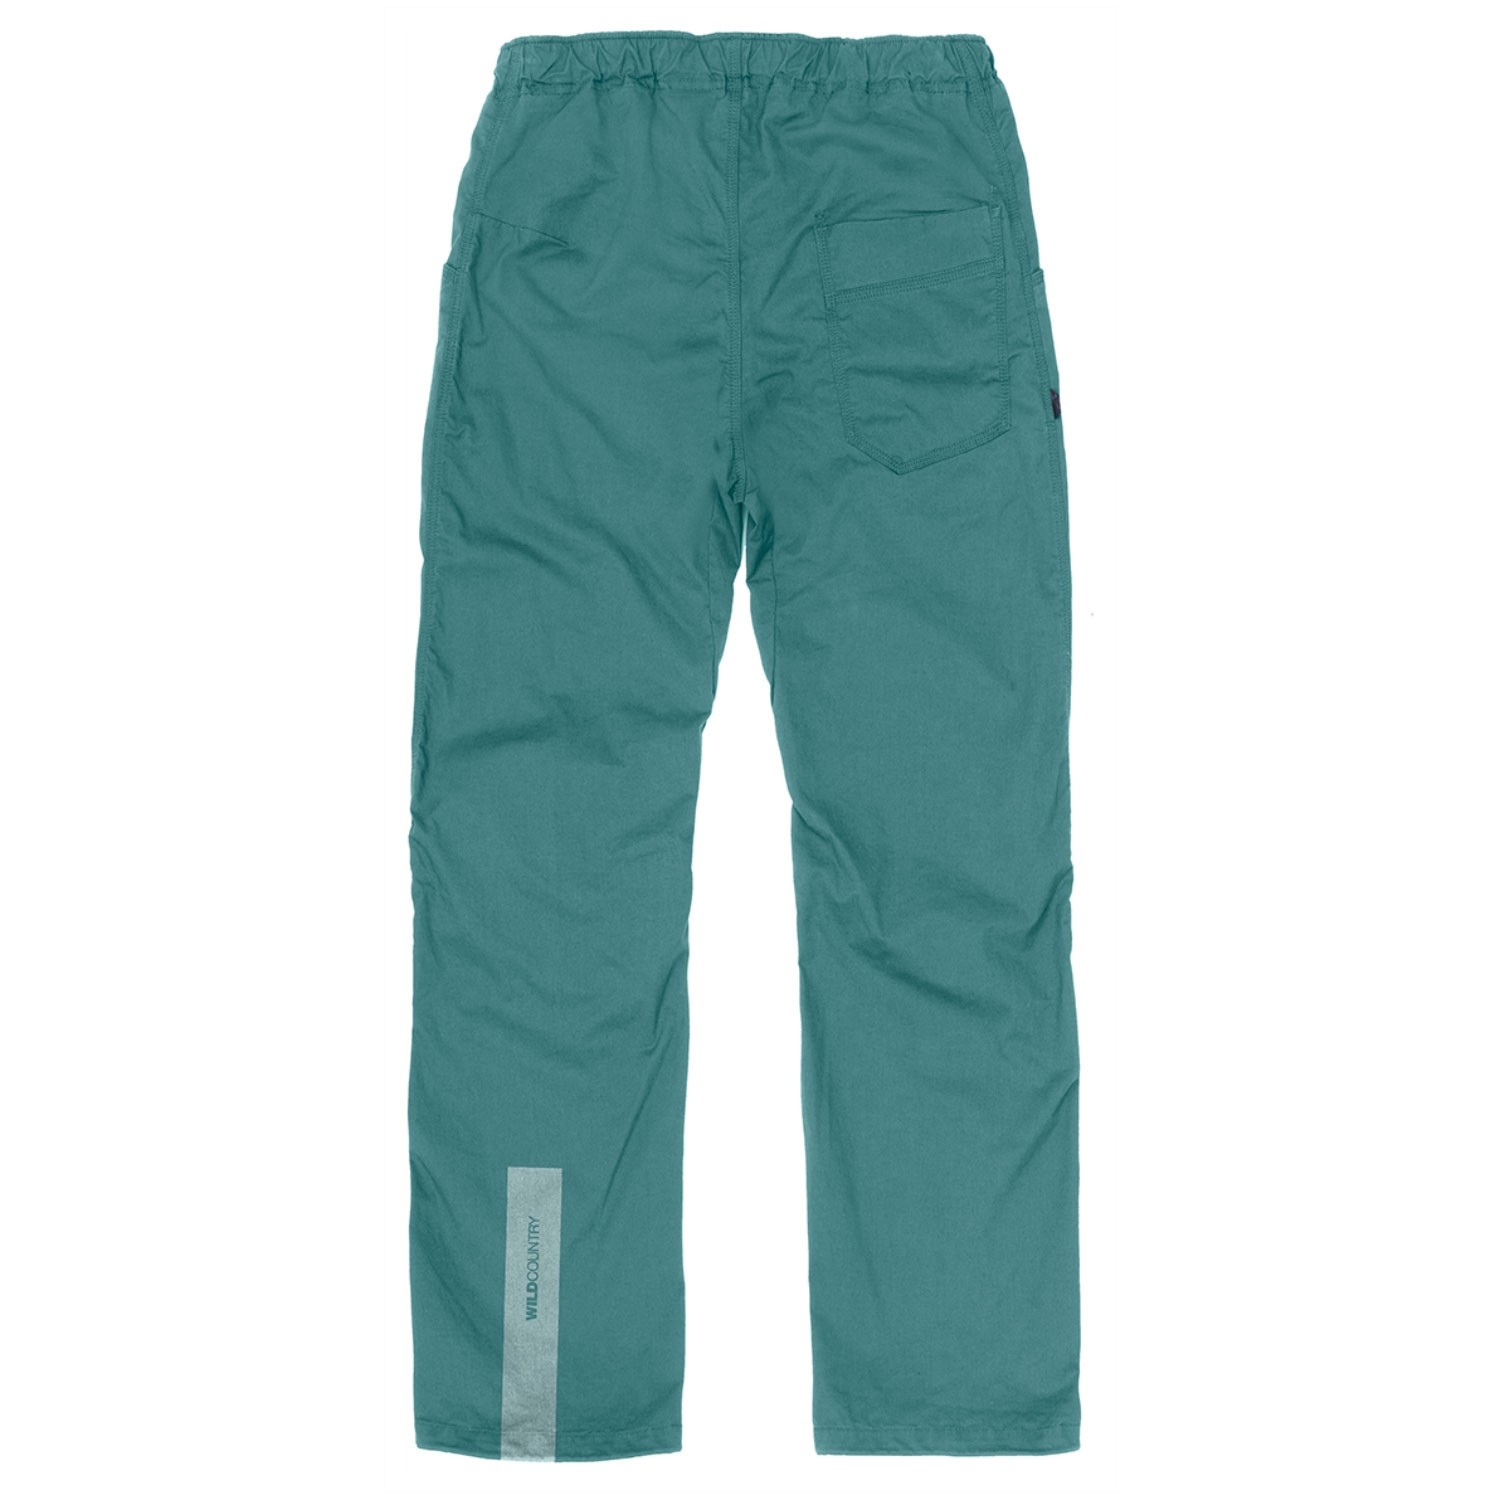 Wild Country Cellar Pant - Tapestry